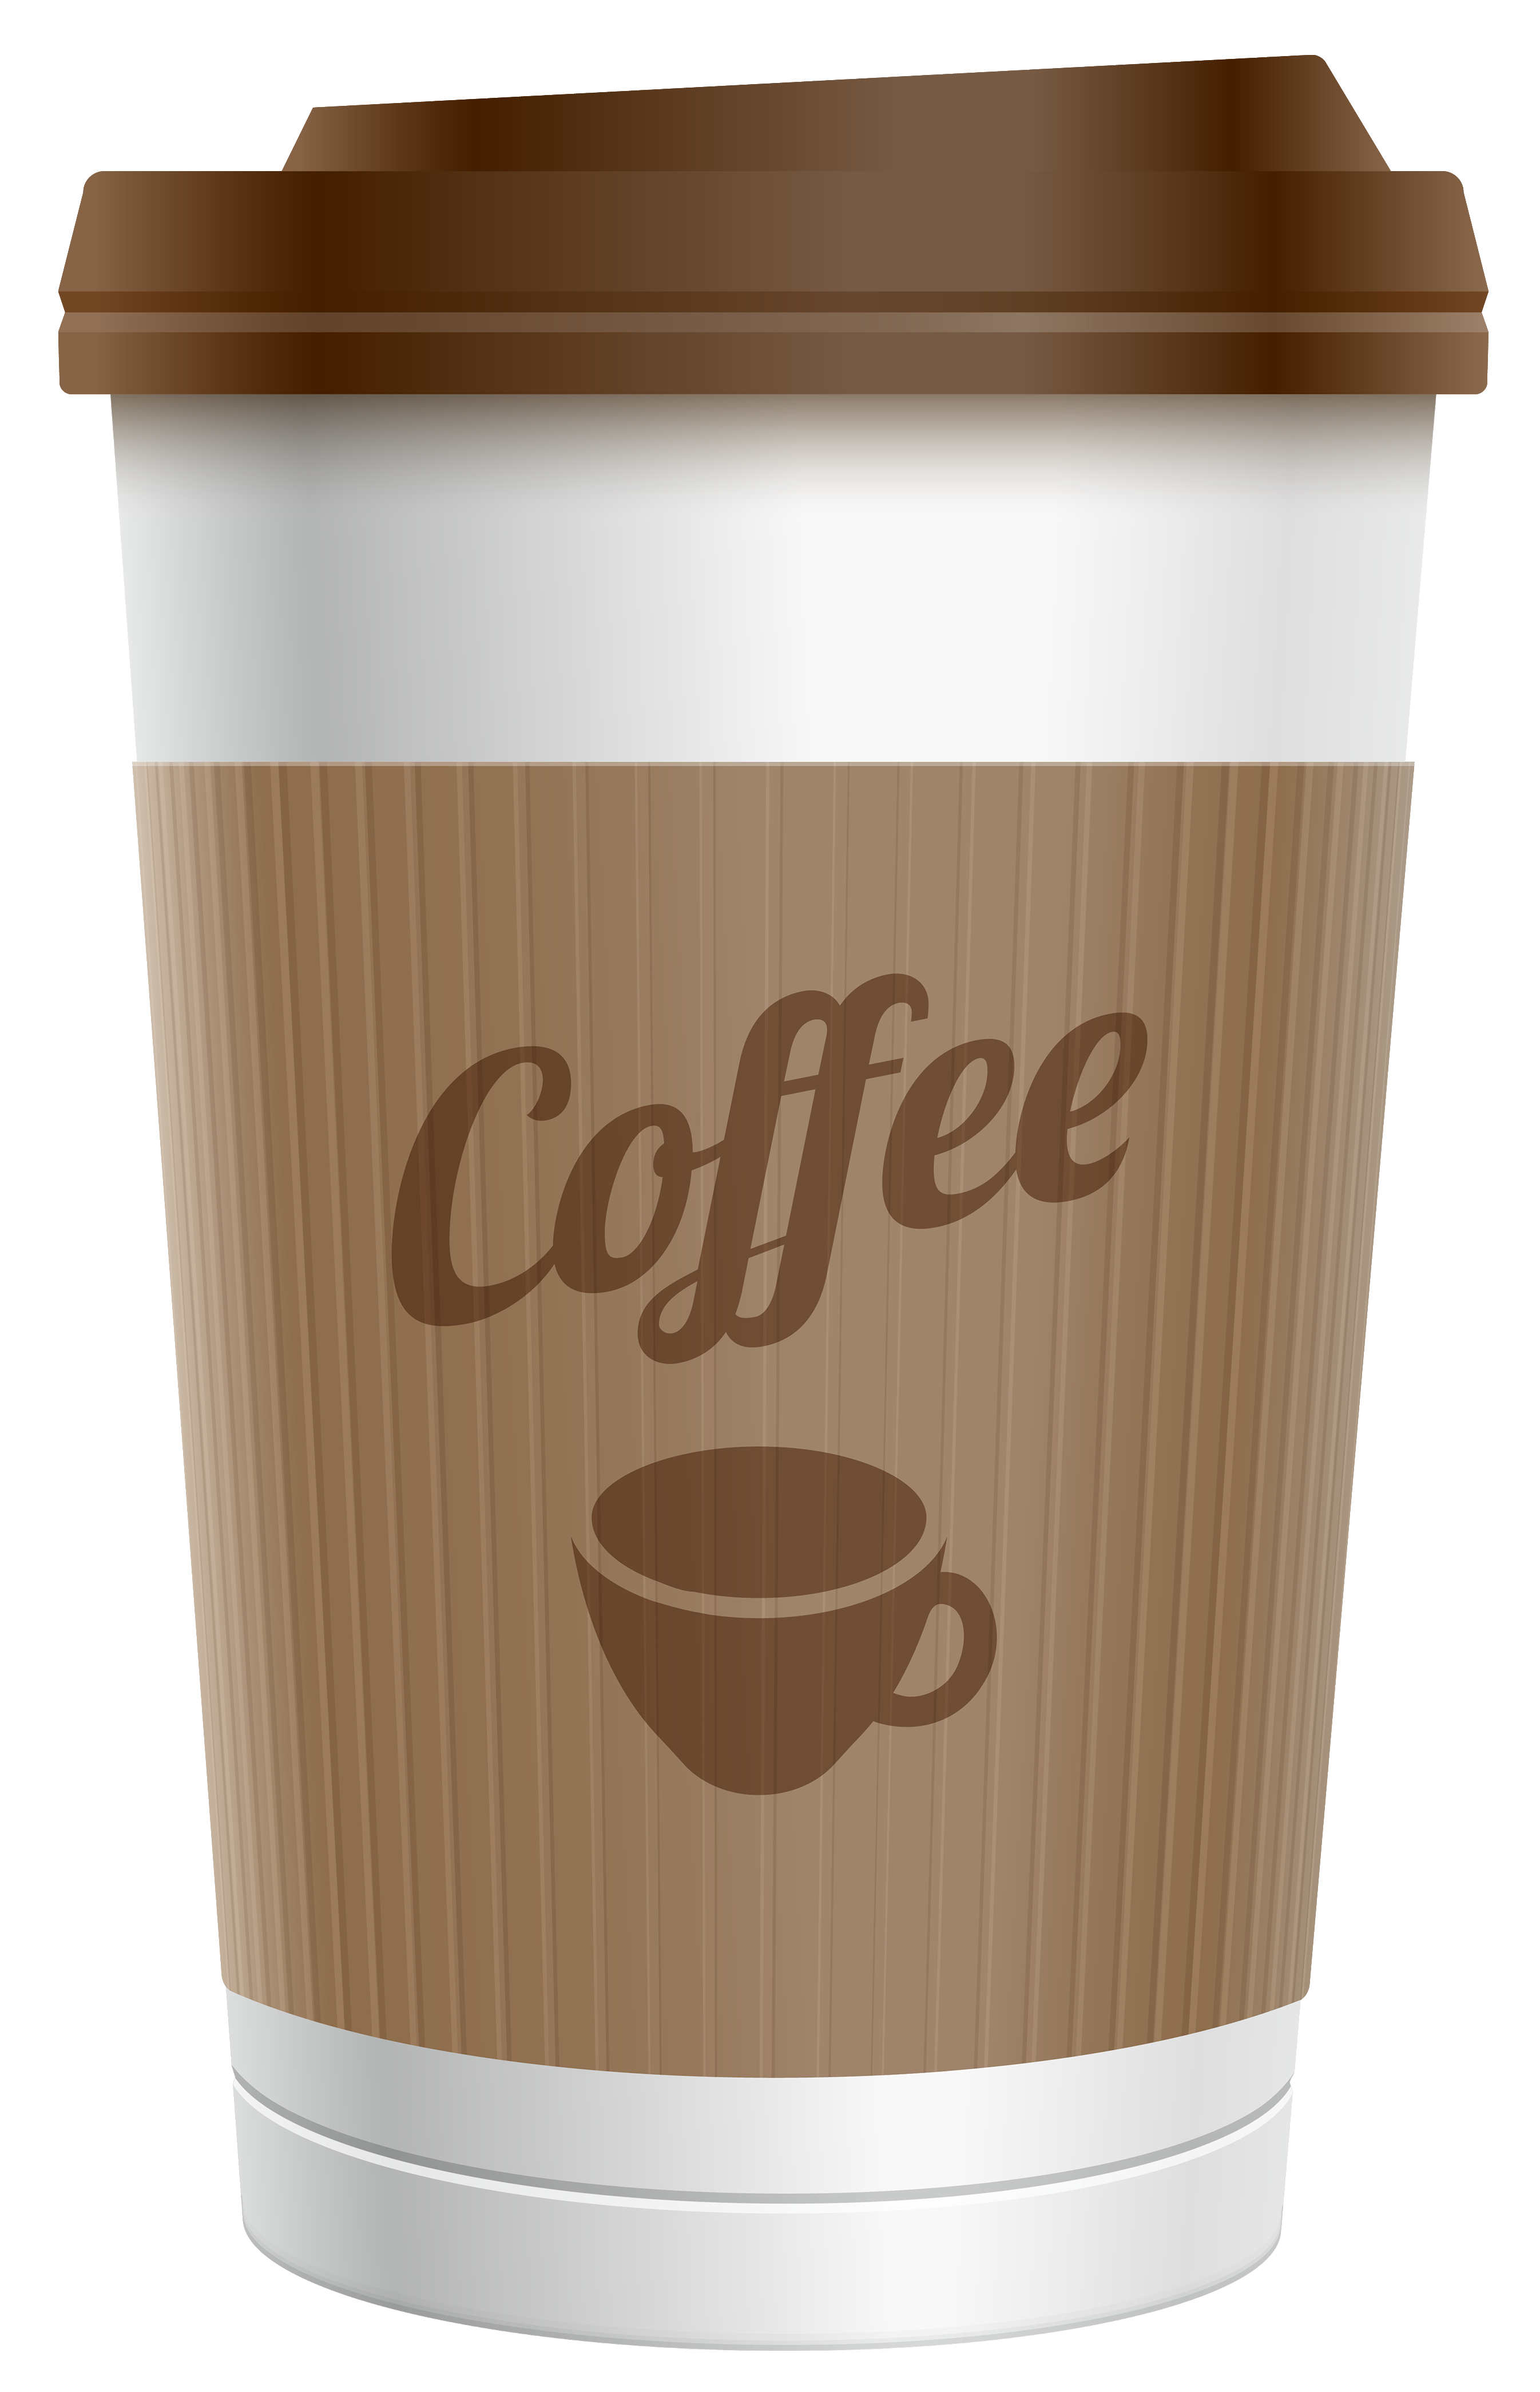 Coffee Cup Clip Art in 2019.